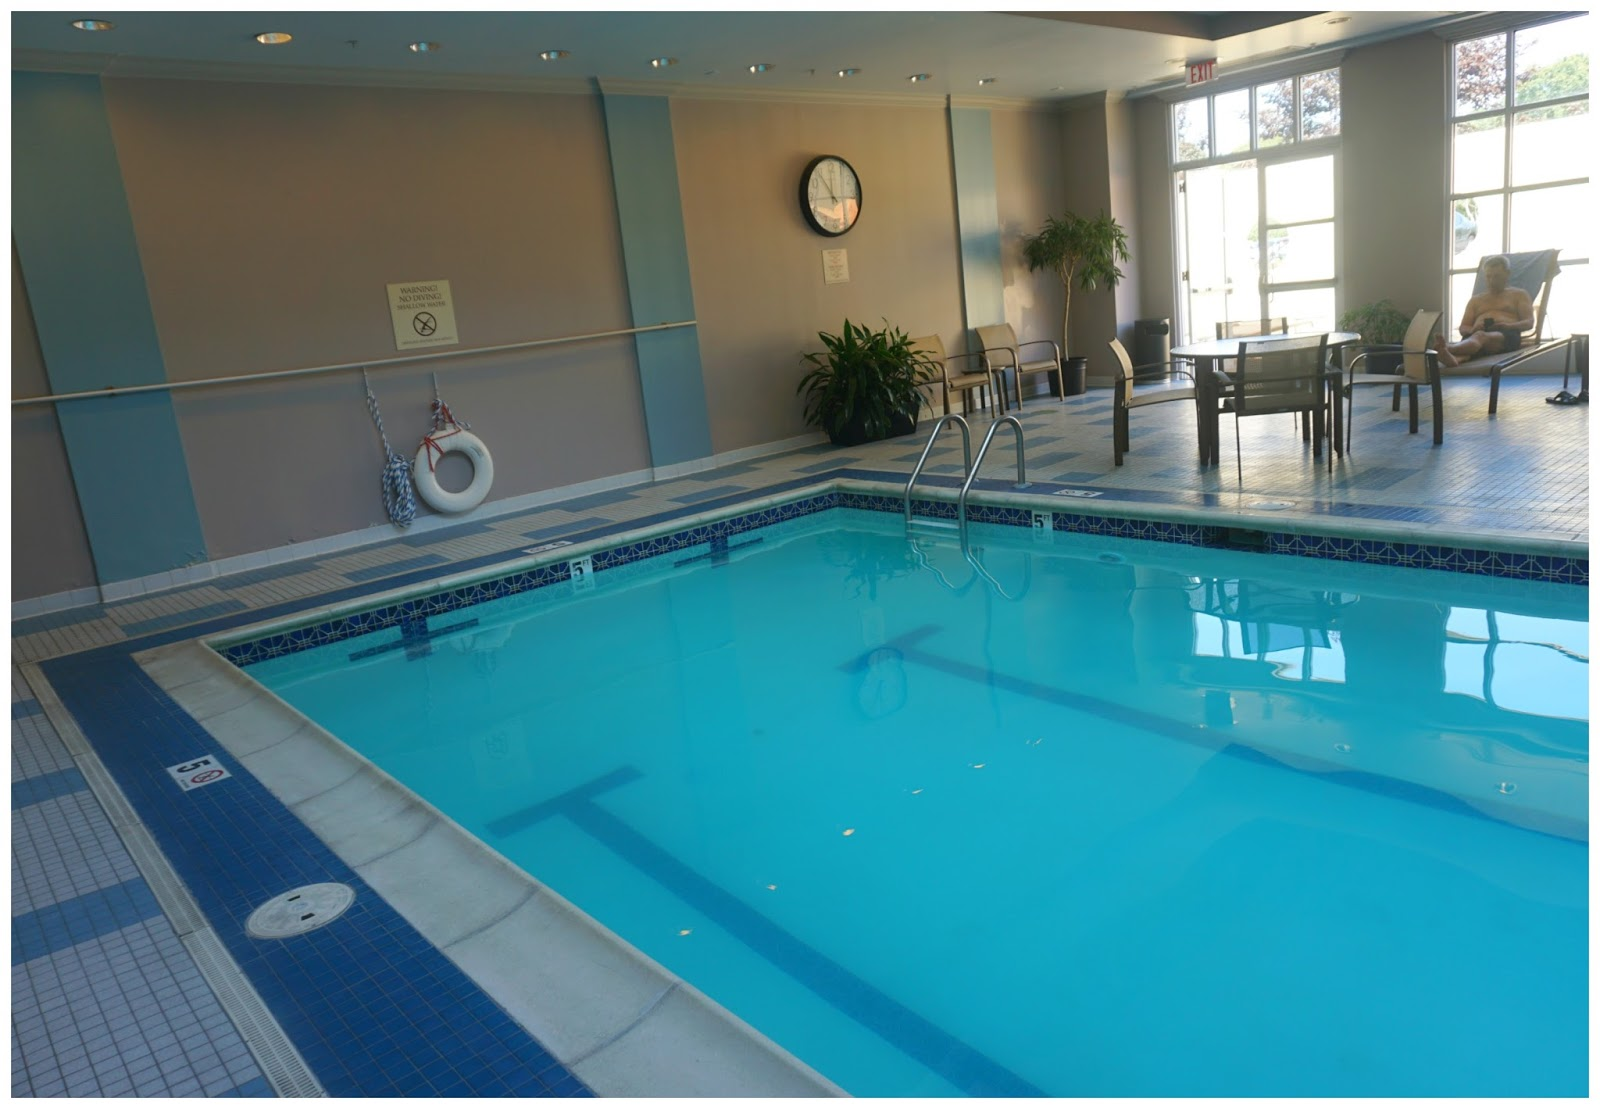 Home place august 2016 the red door spa partnering with the mystic marriott for the indoor pool vtopaller Images